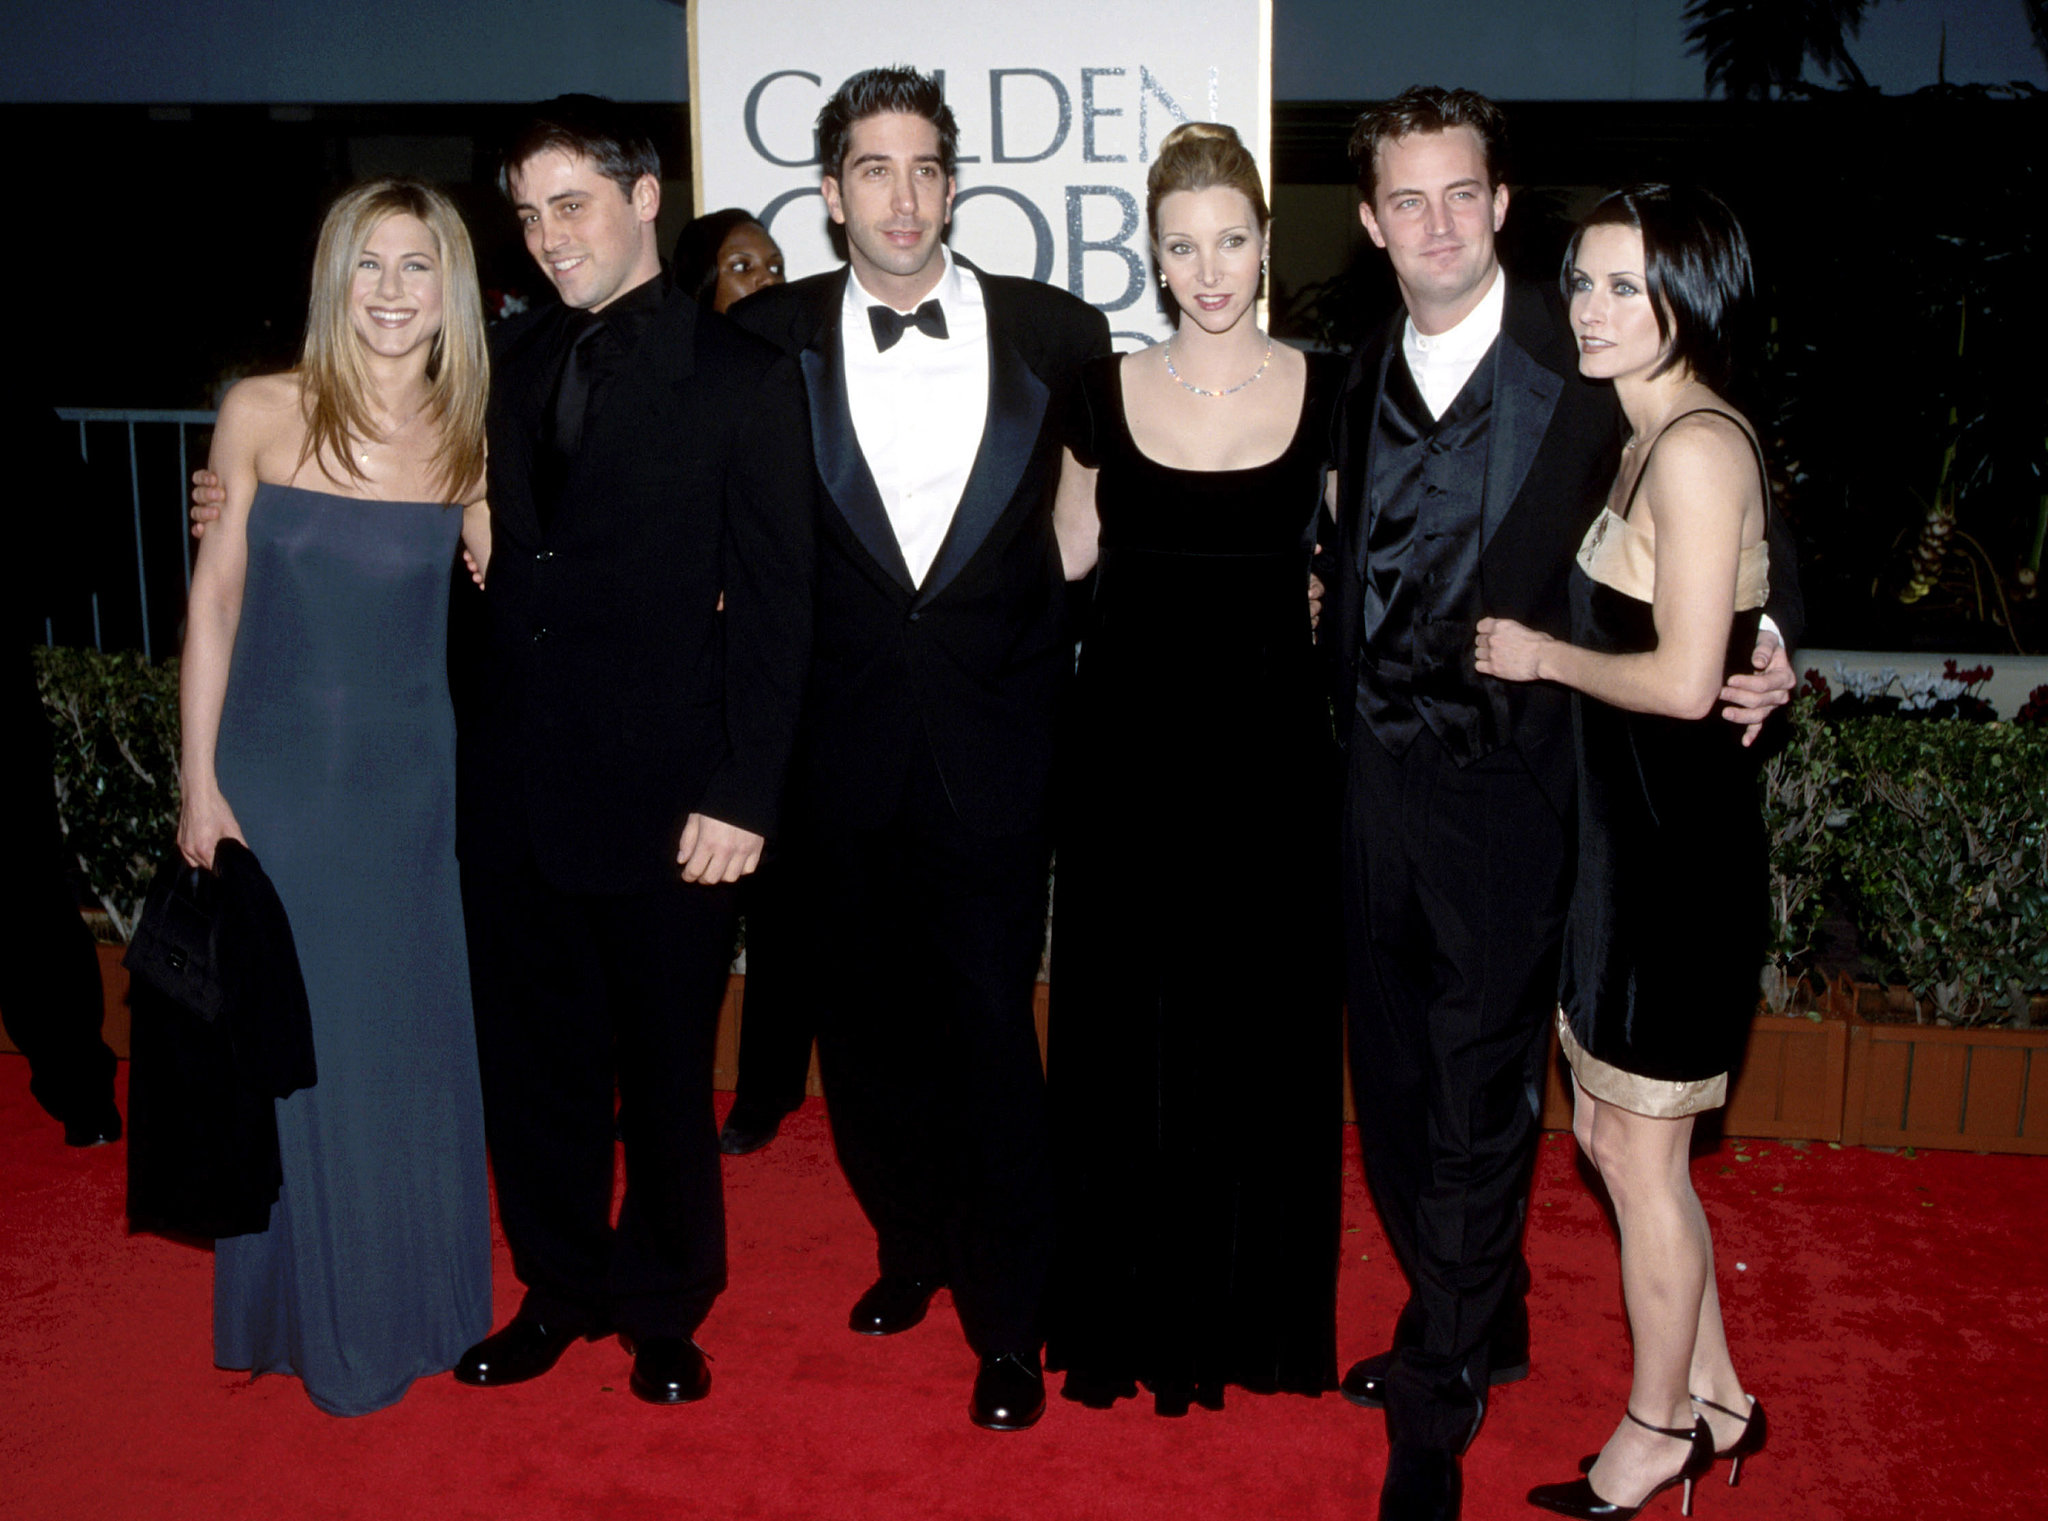 Jennifer Aniston, Matt LeBlanc, David Schwimmer, Lisa Kudrow, Matthew Perry, and Courteney Cox posed togethe